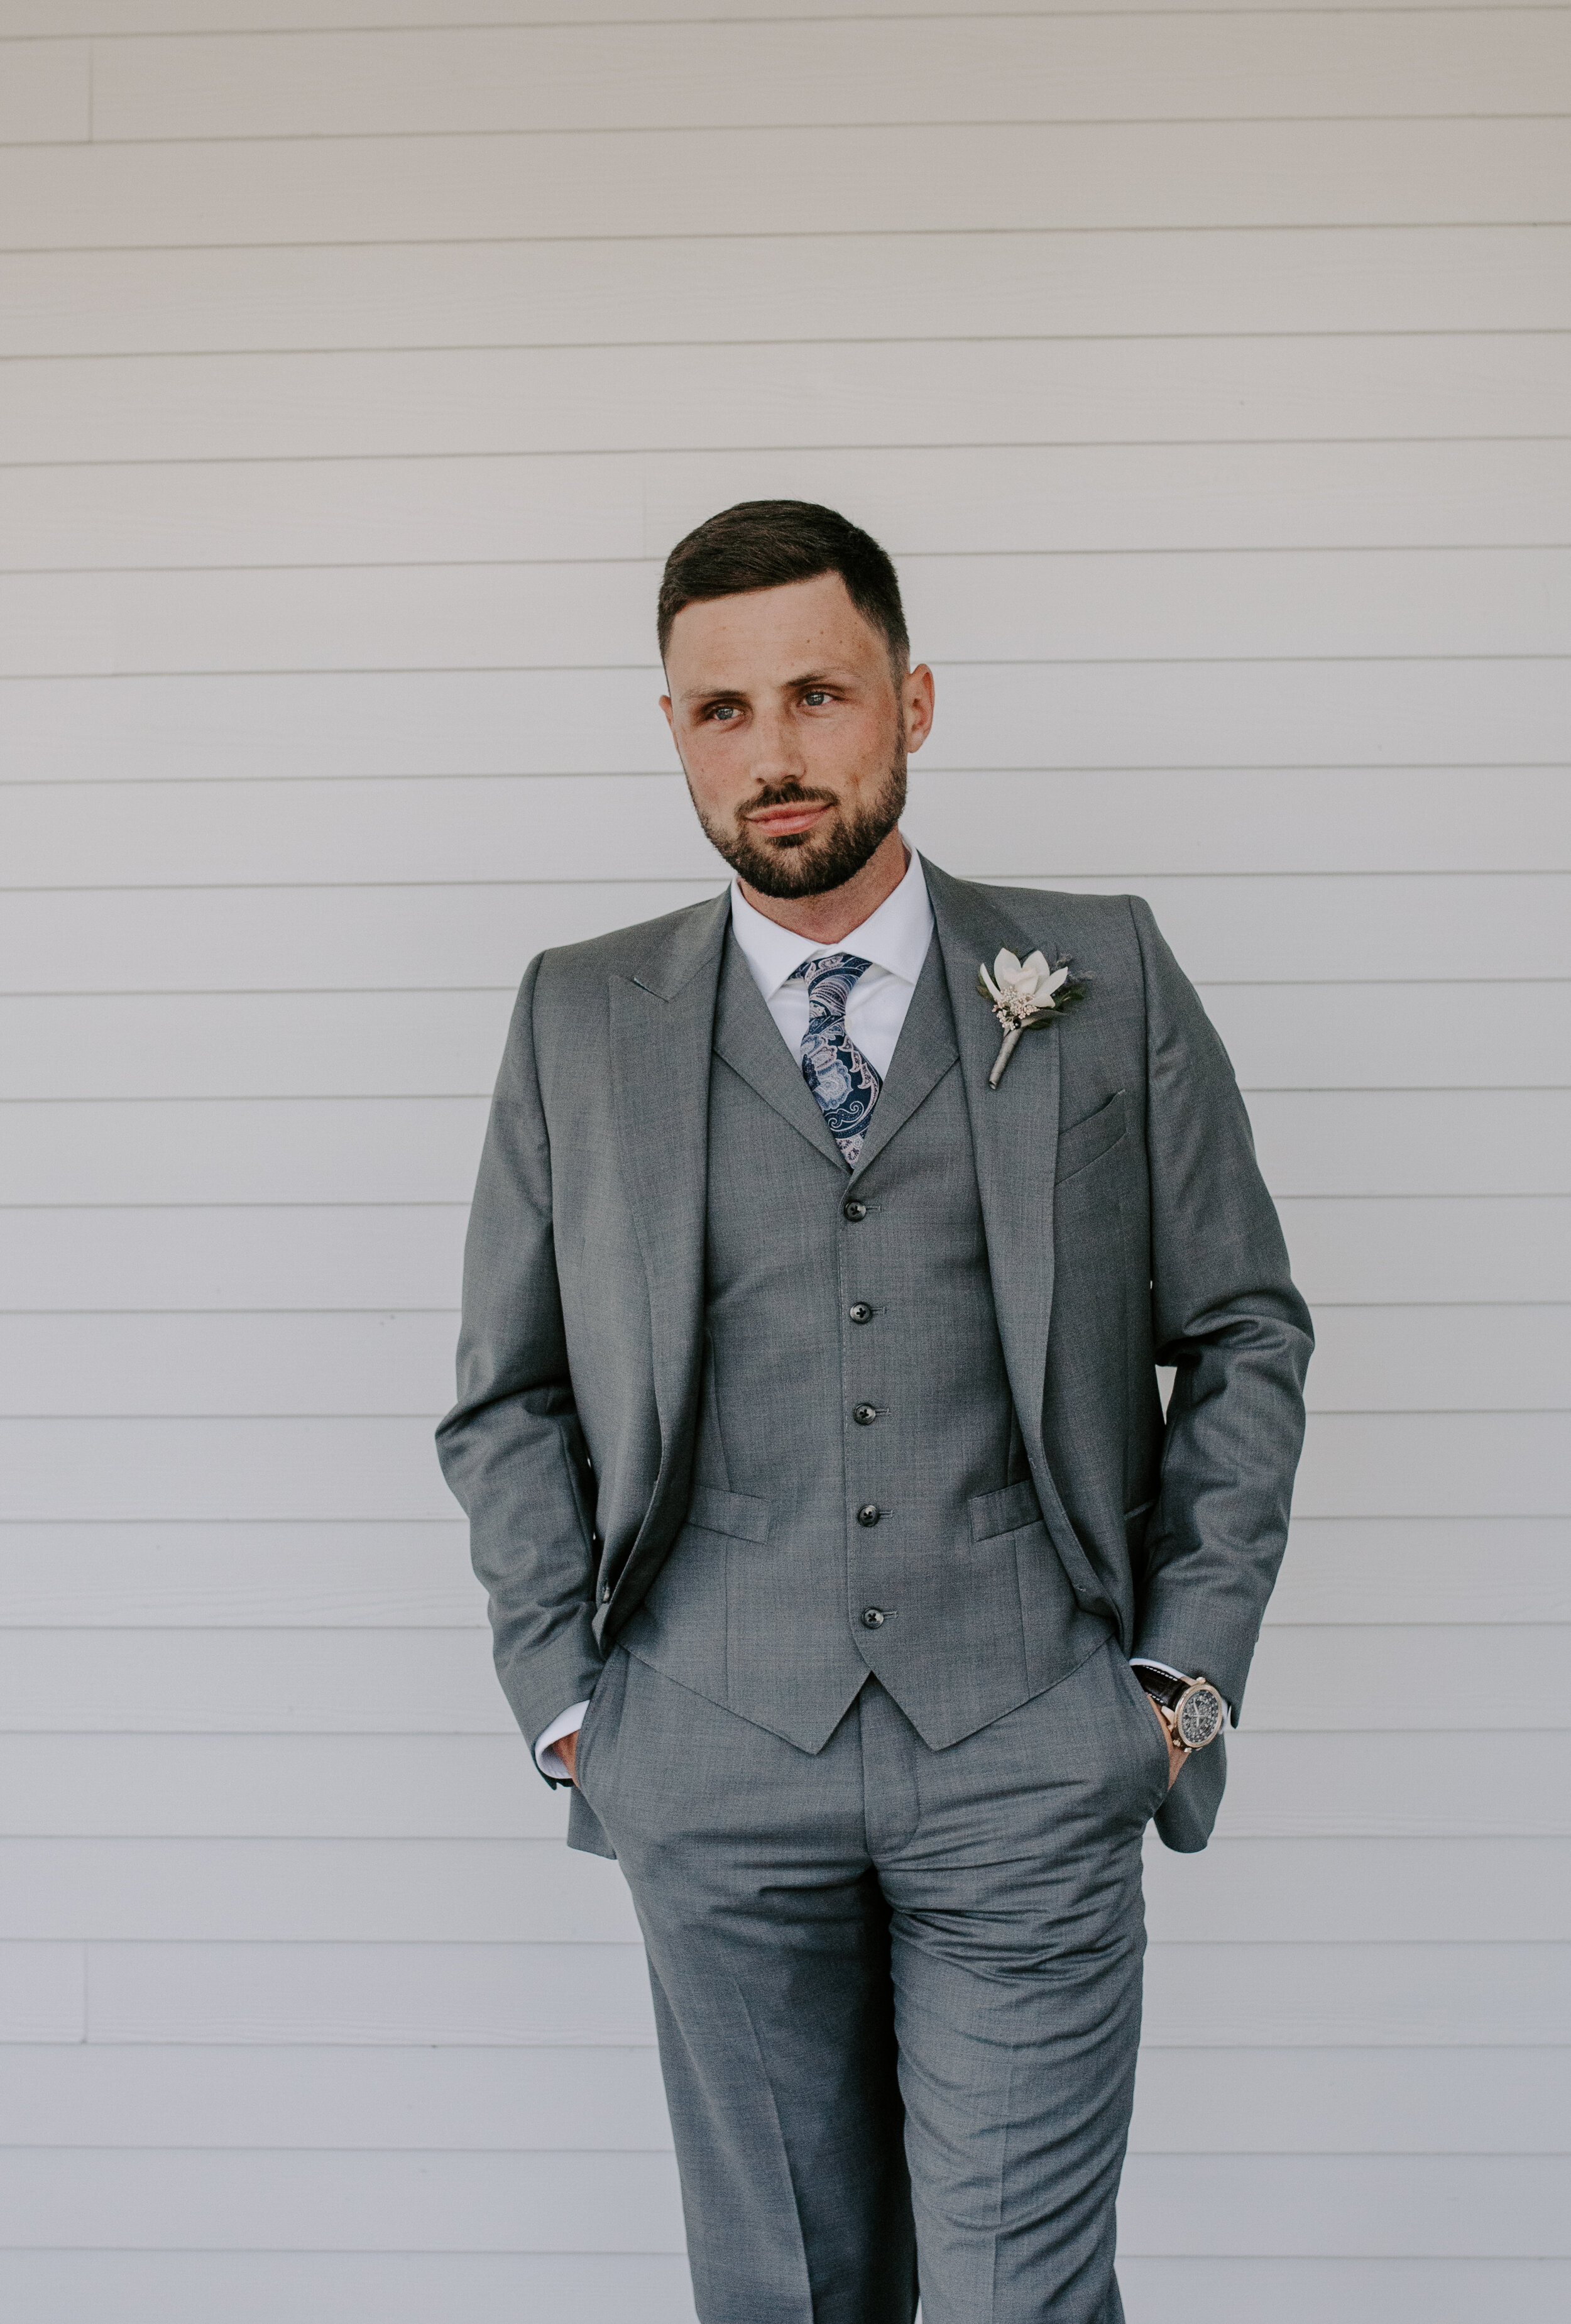 The Handsome Groom -